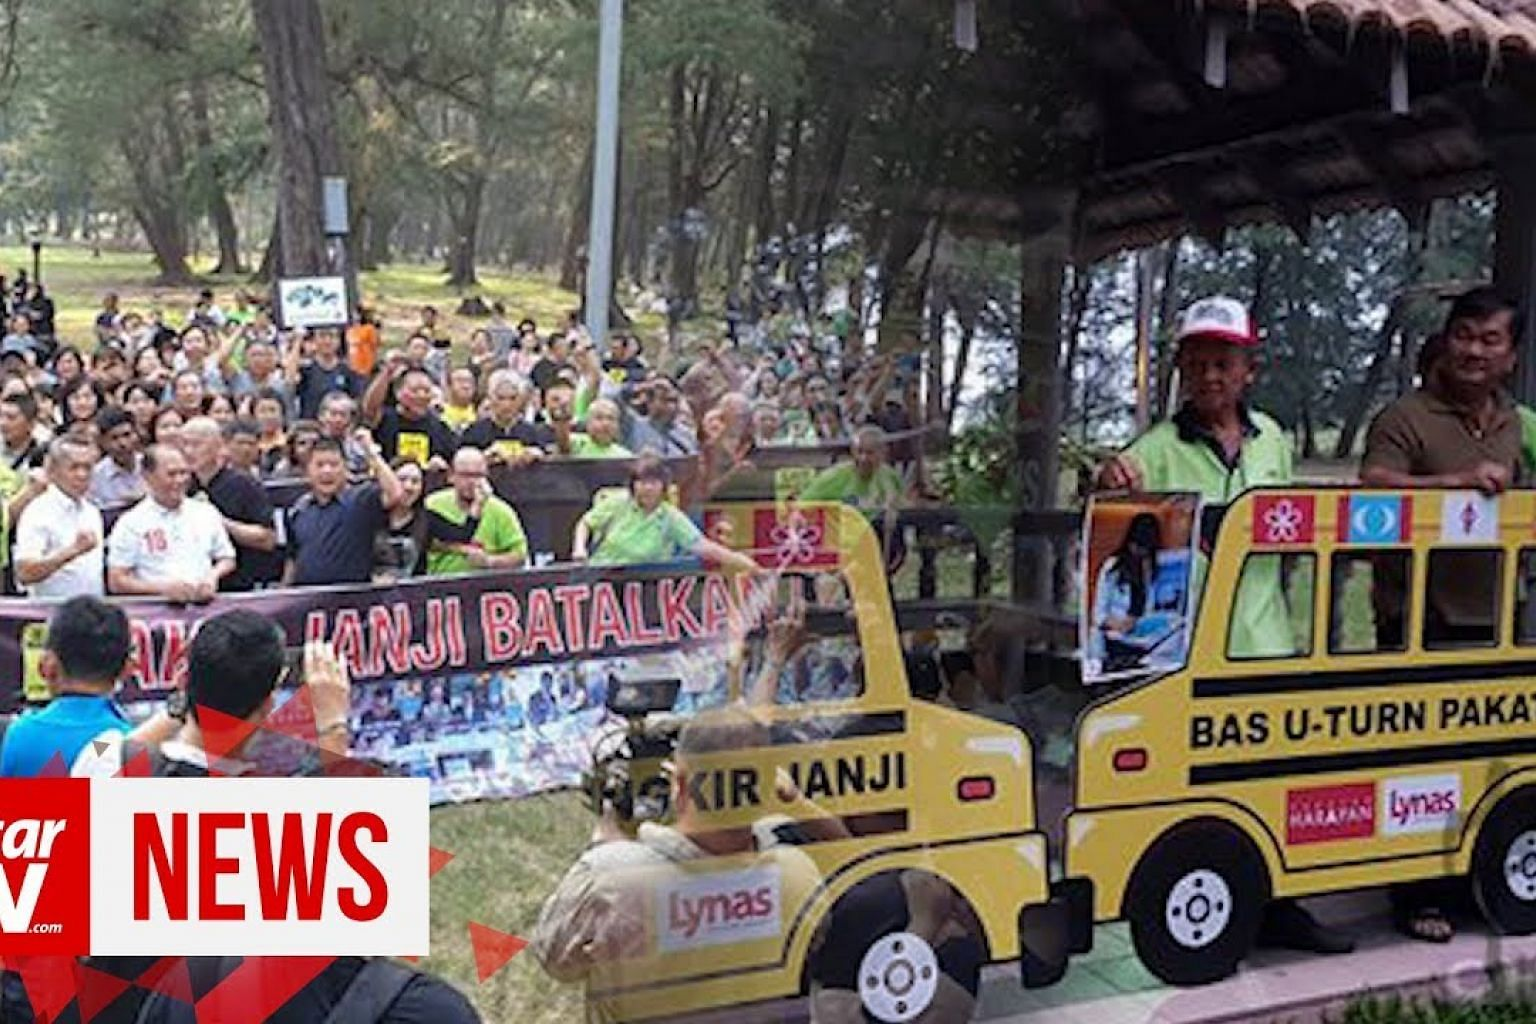 Anti-lynas rally protests against Pakatan's U-turn on manifesto promise